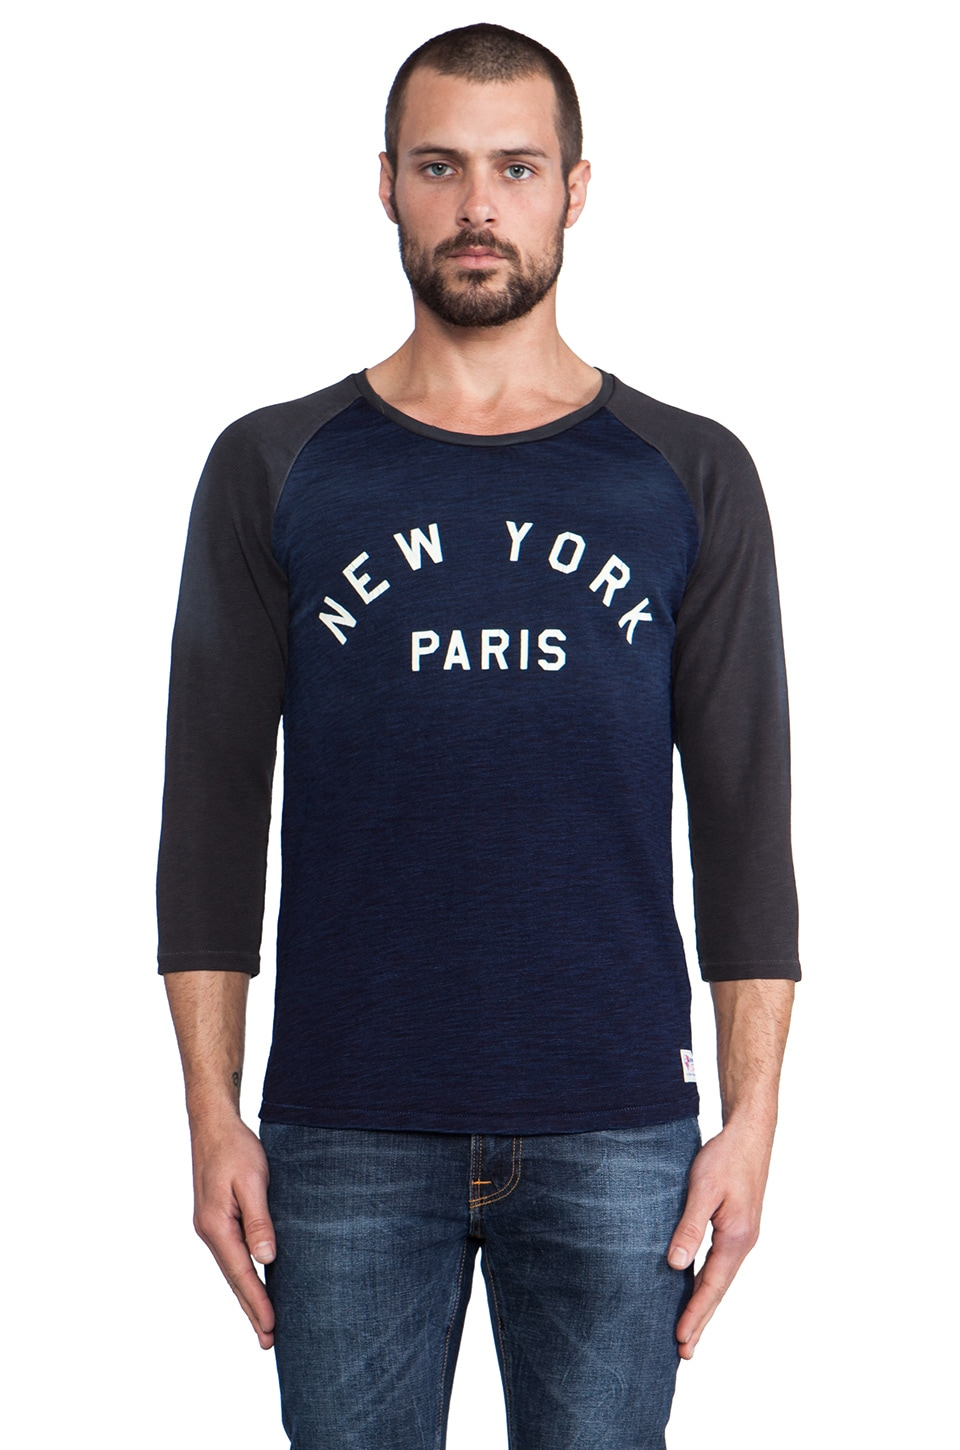 Scotch & Soda NY Baseball Fans Tee in Blue/Black